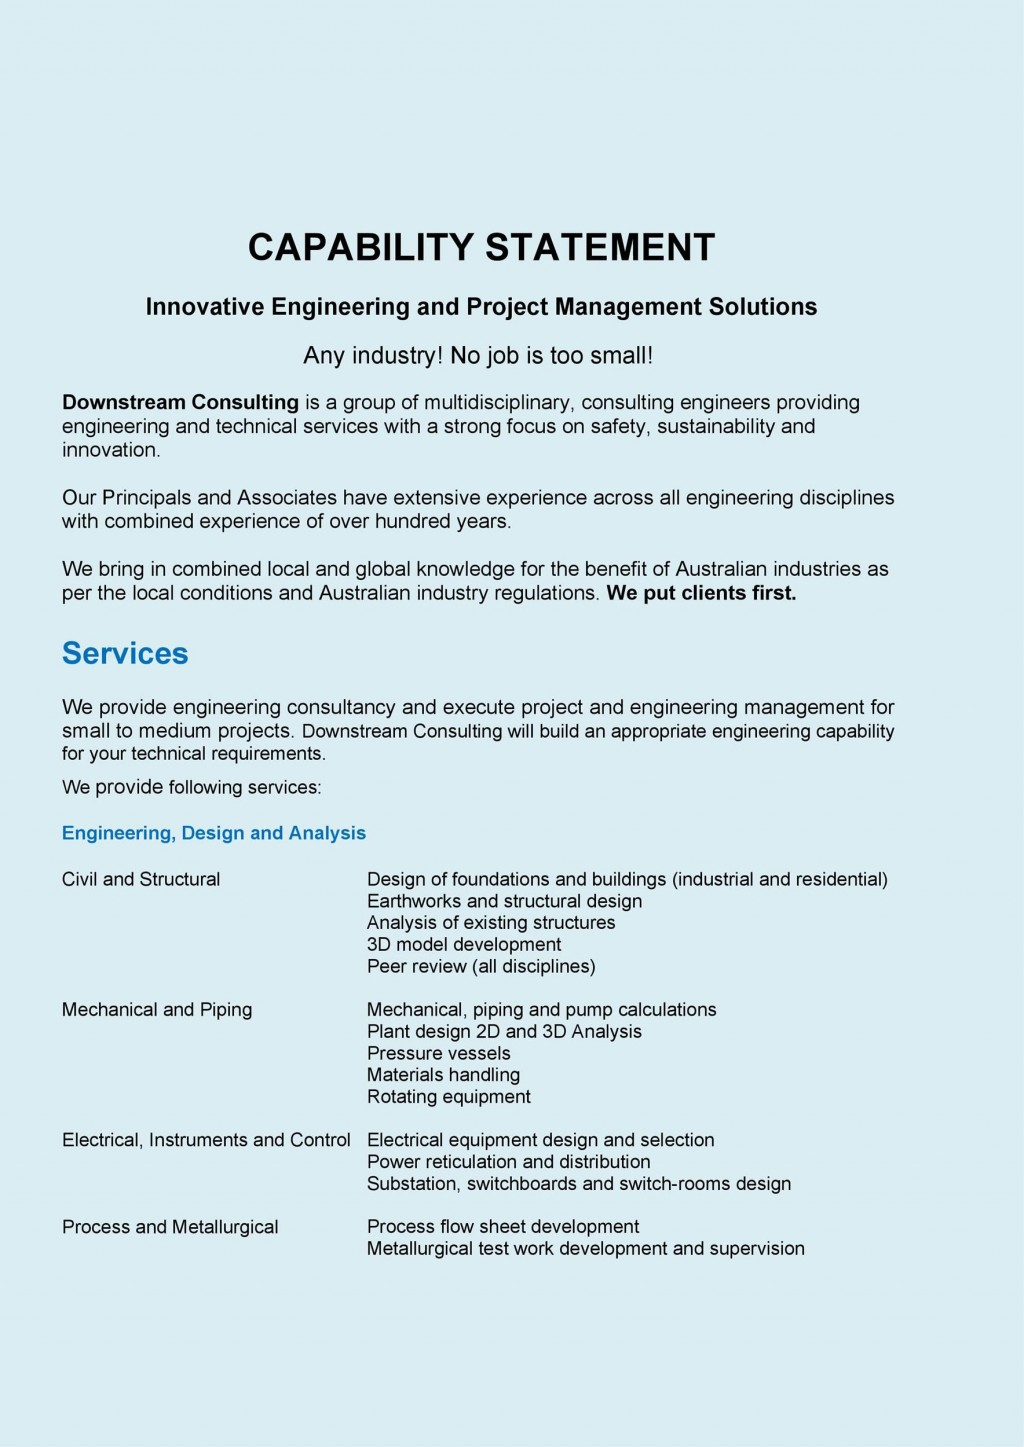 005 Phenomenal Free Capability Statement Template Word Design  DocumentLarge